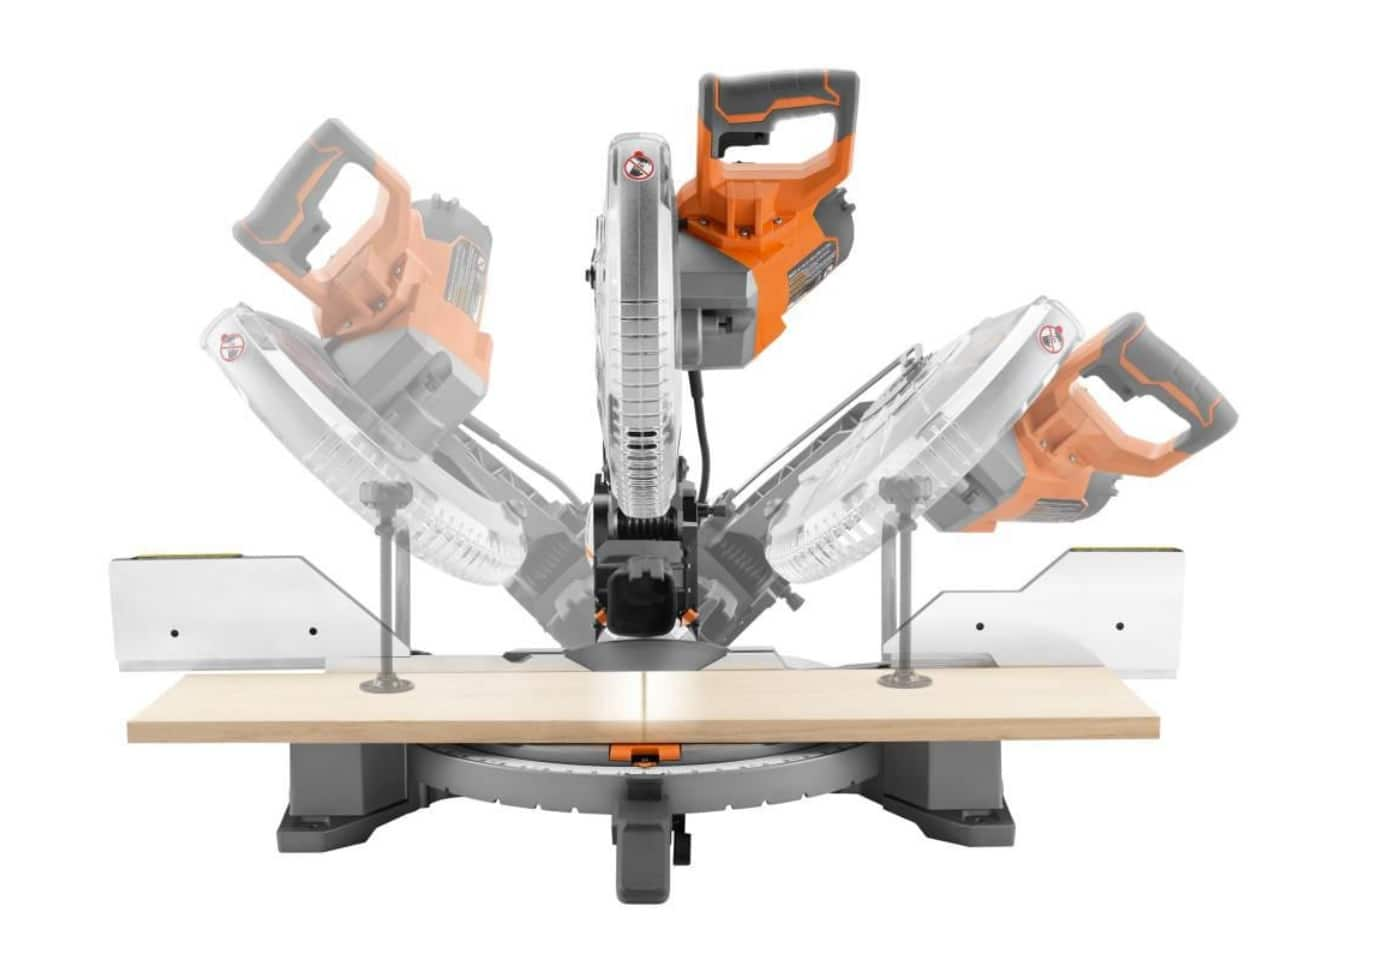 RIDGID 15 Amp 12 In. Dual Bevel Miter Saw with LED Factory Blemished($199.99 + Store Pickup)